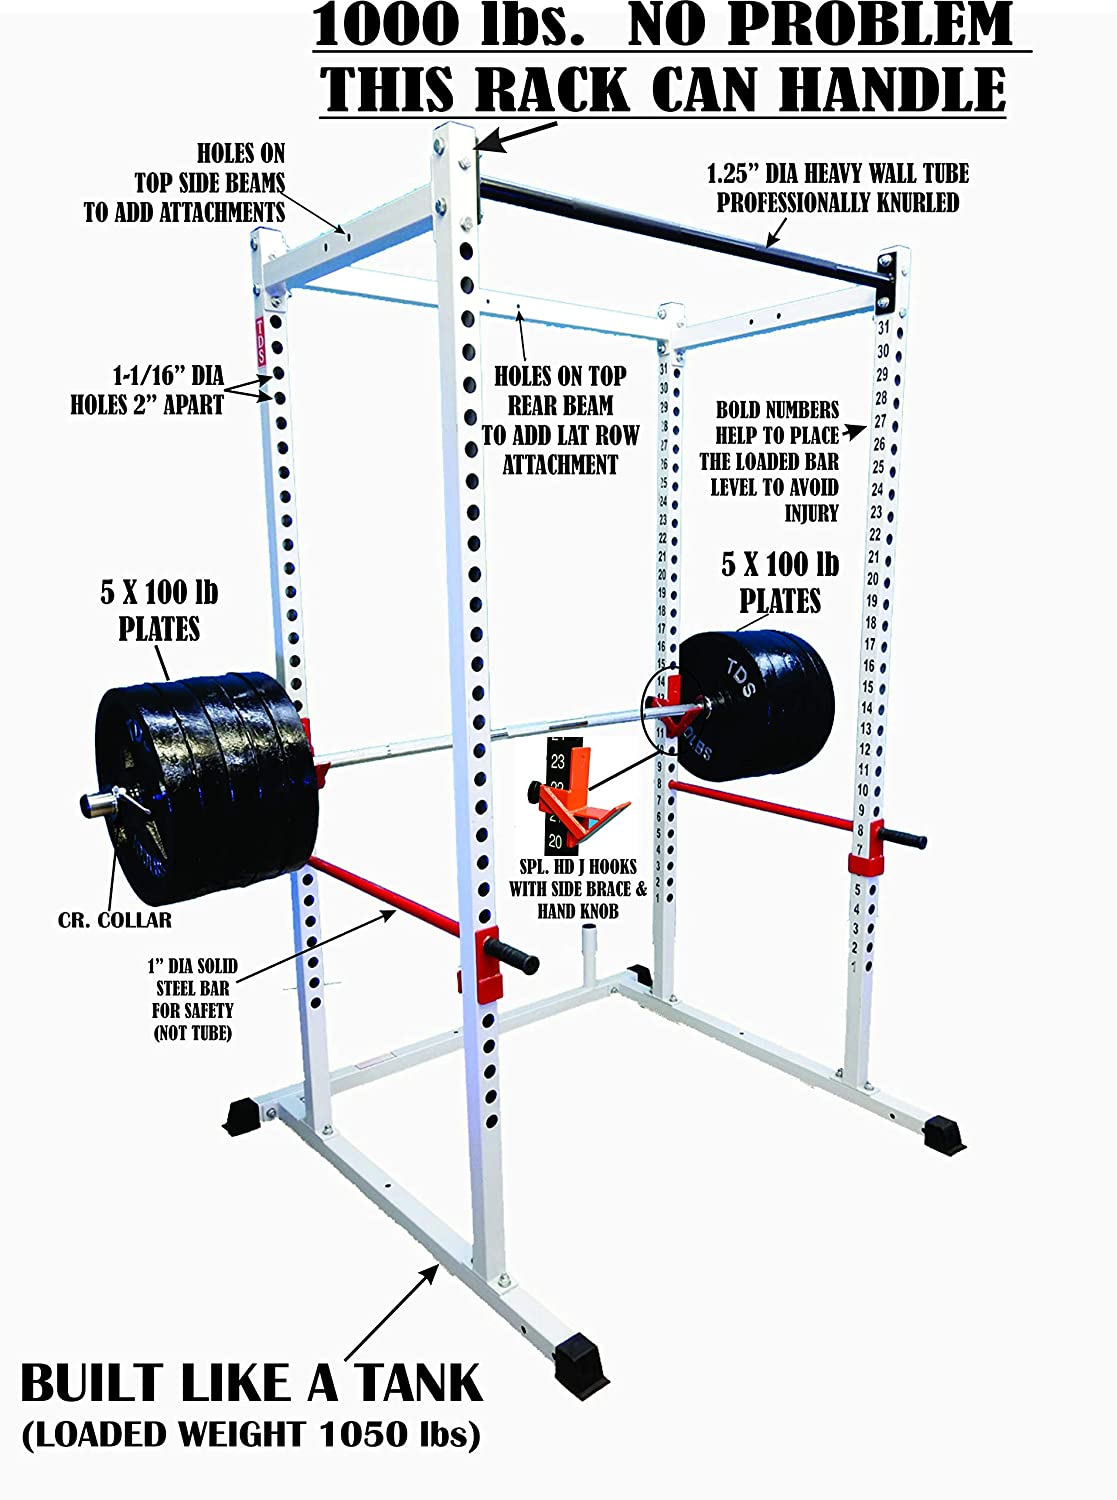 TDS Mega 1000 lb Rated Black Power Squat Rack, 1.25 Dia Professionally knurled Front Chinning Bar, Provision to add LAT Attachment, Pull up Chip up bar and More